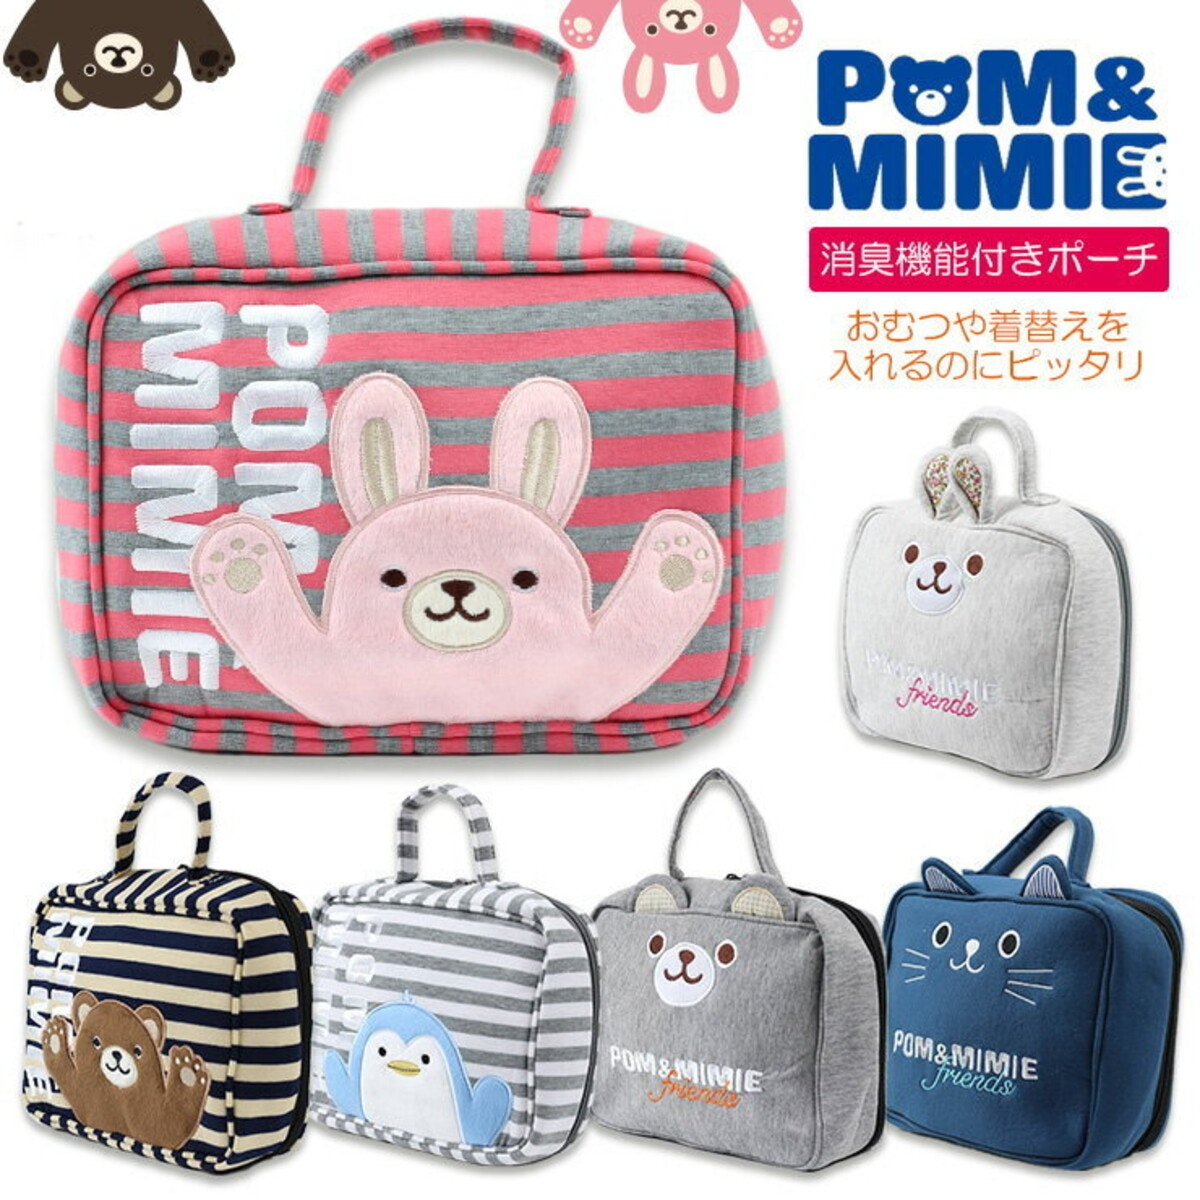 POM&MIMIE 消臭機能付きおむつポーチ